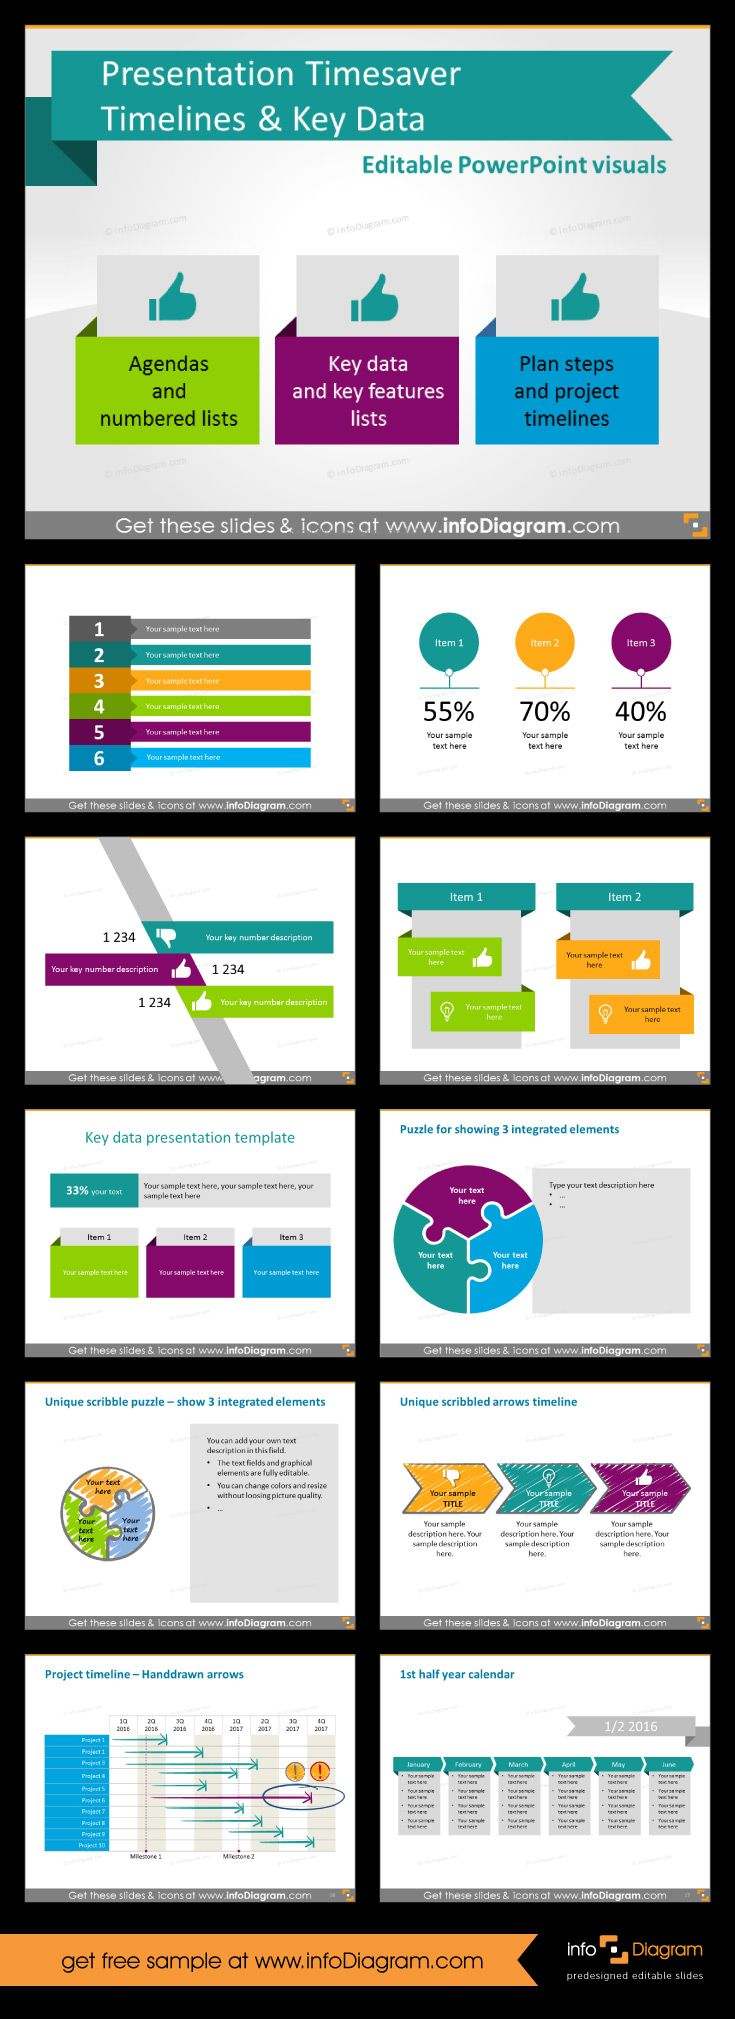 45 best business powerpoint templates images on pinterest business presentation timesaver timelines key data ppt diagrams toneelgroepblik Image collections